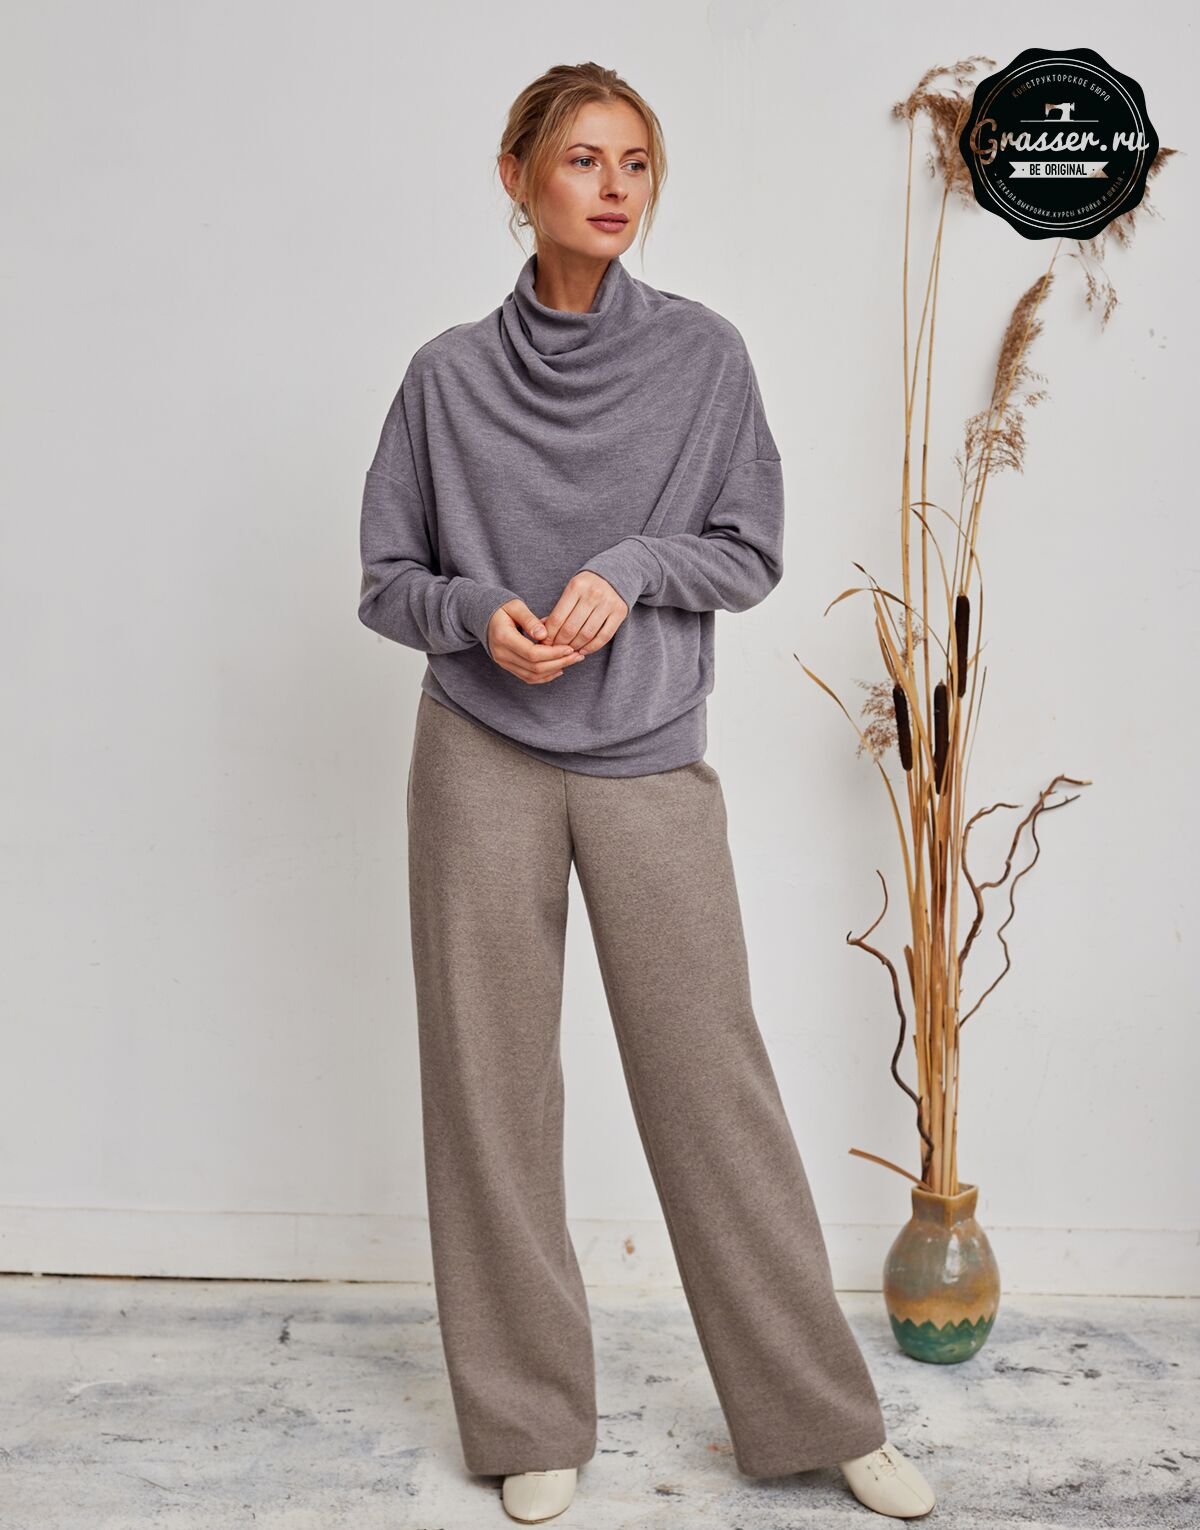 Trousers, pattern №725